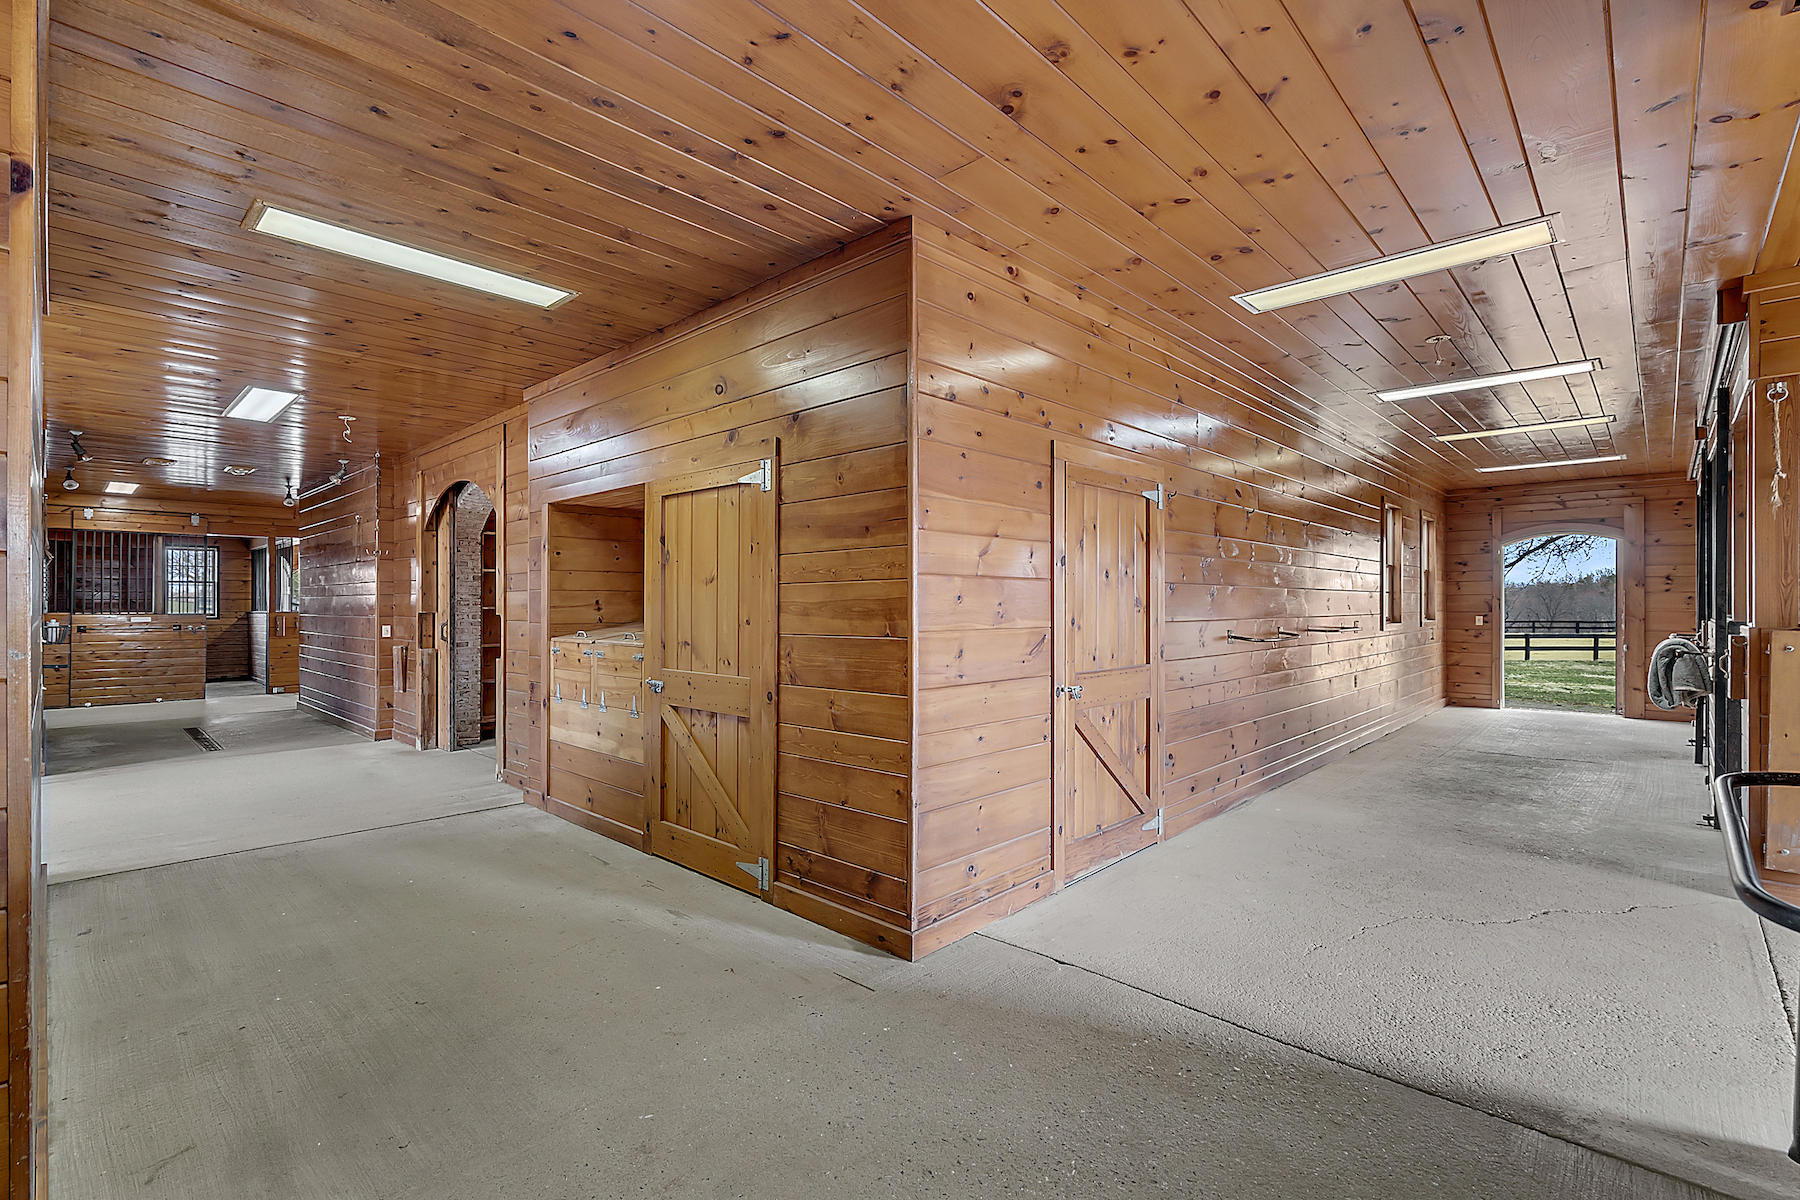 Stable interior: wash stall: feed copy.jpg